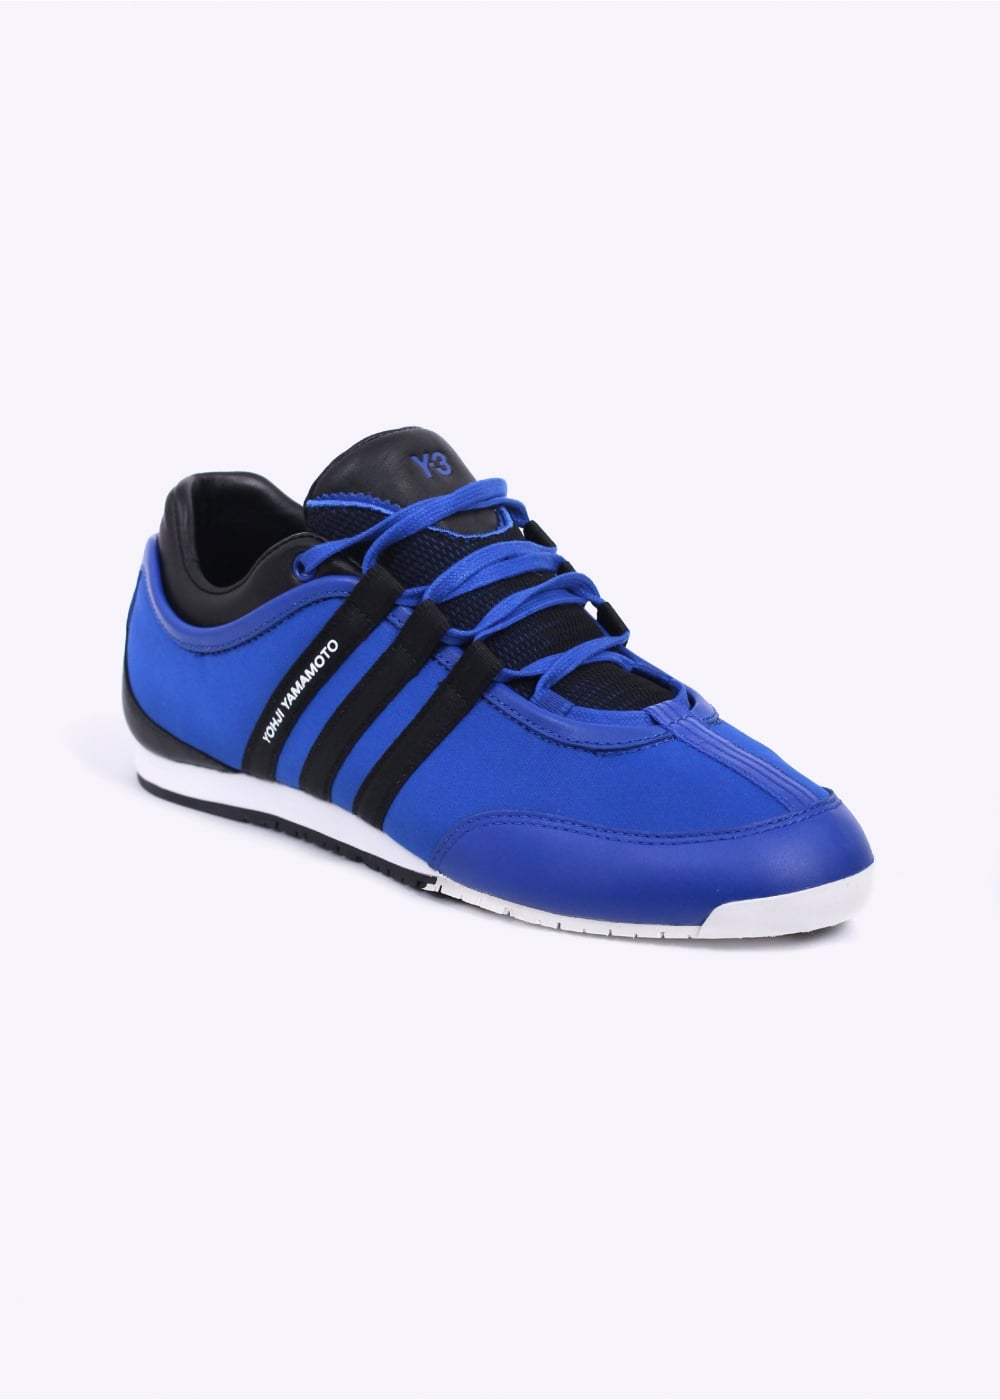 adidas Y-3 Boxing Trainers - Electric Blue